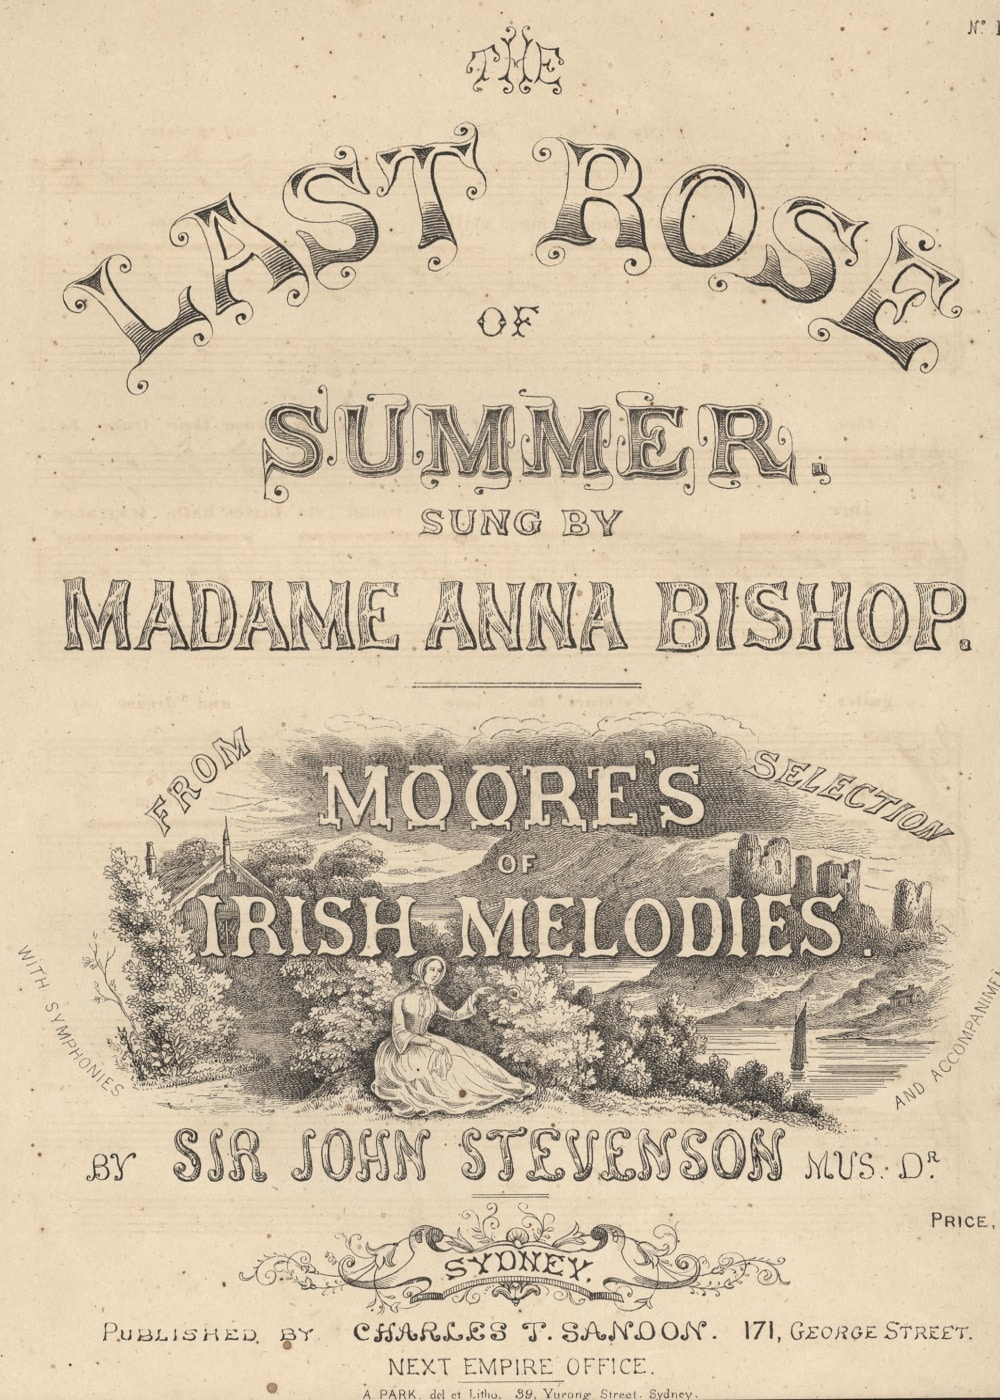 59f04f2b9 The last rose of summer, sung by Madame Anna Bishop (Sydney: Sandon,